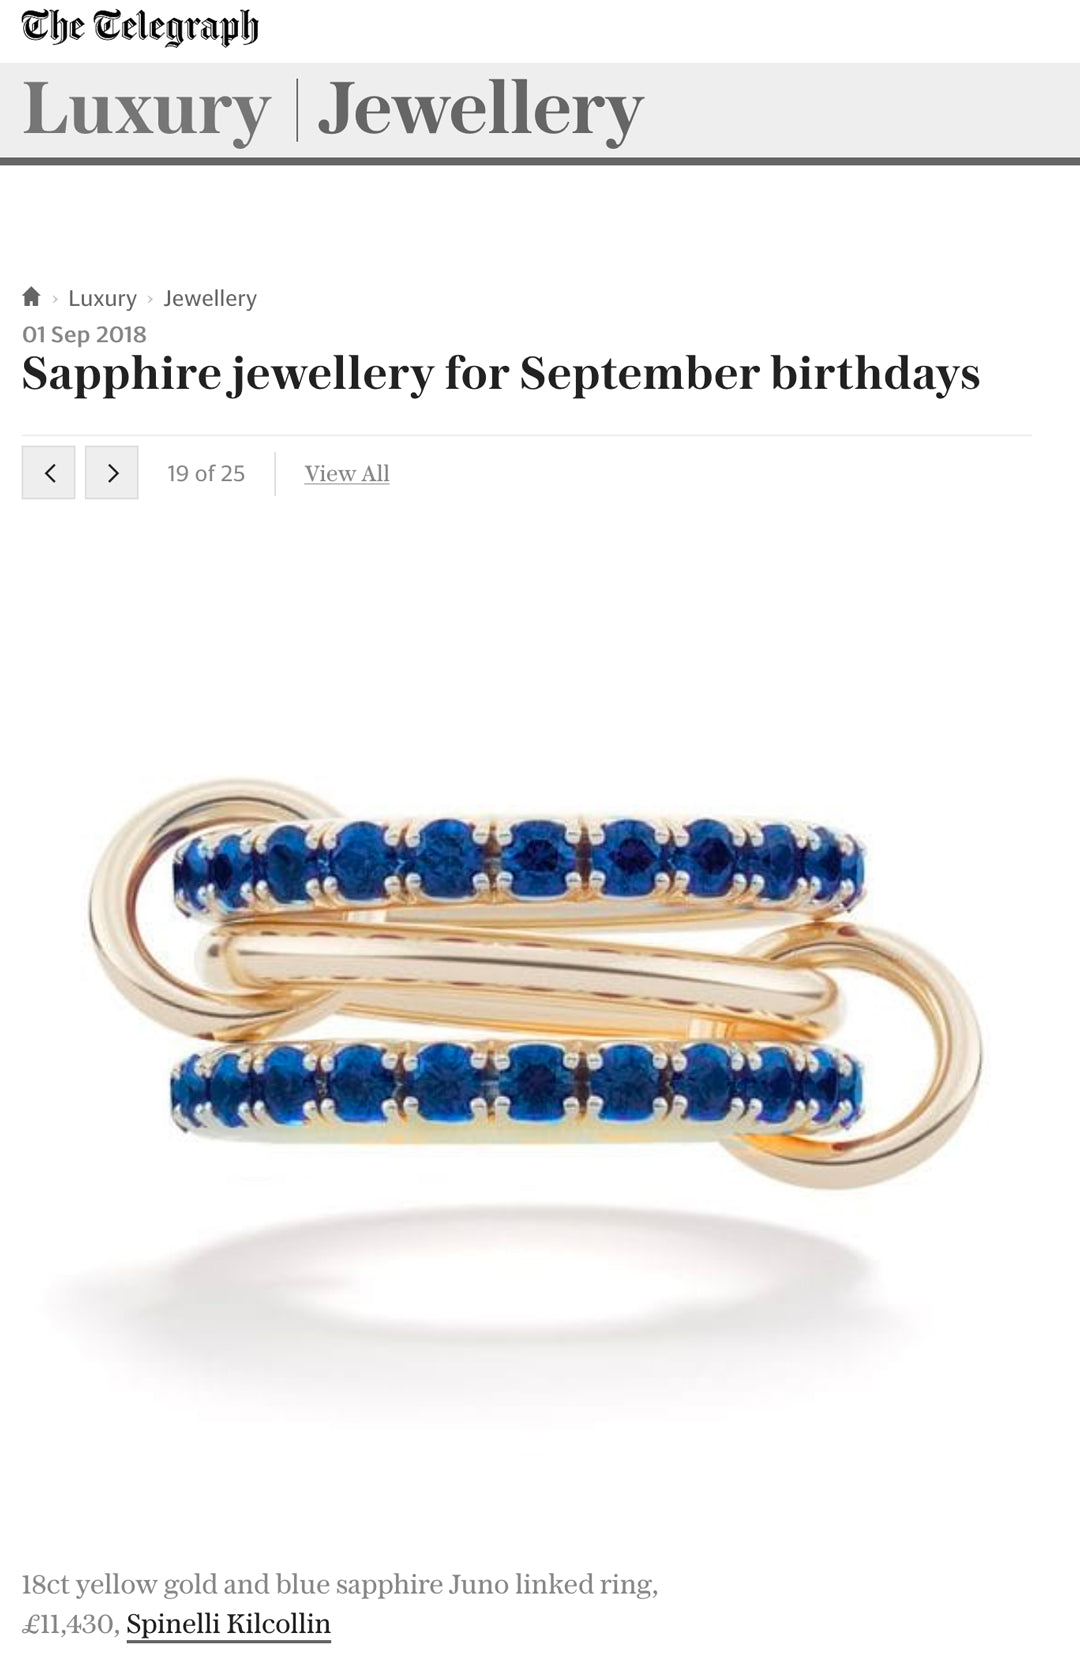 spinelli kilcollin saphirre ring juno bleu telegraph linked-rings luxury jewelry